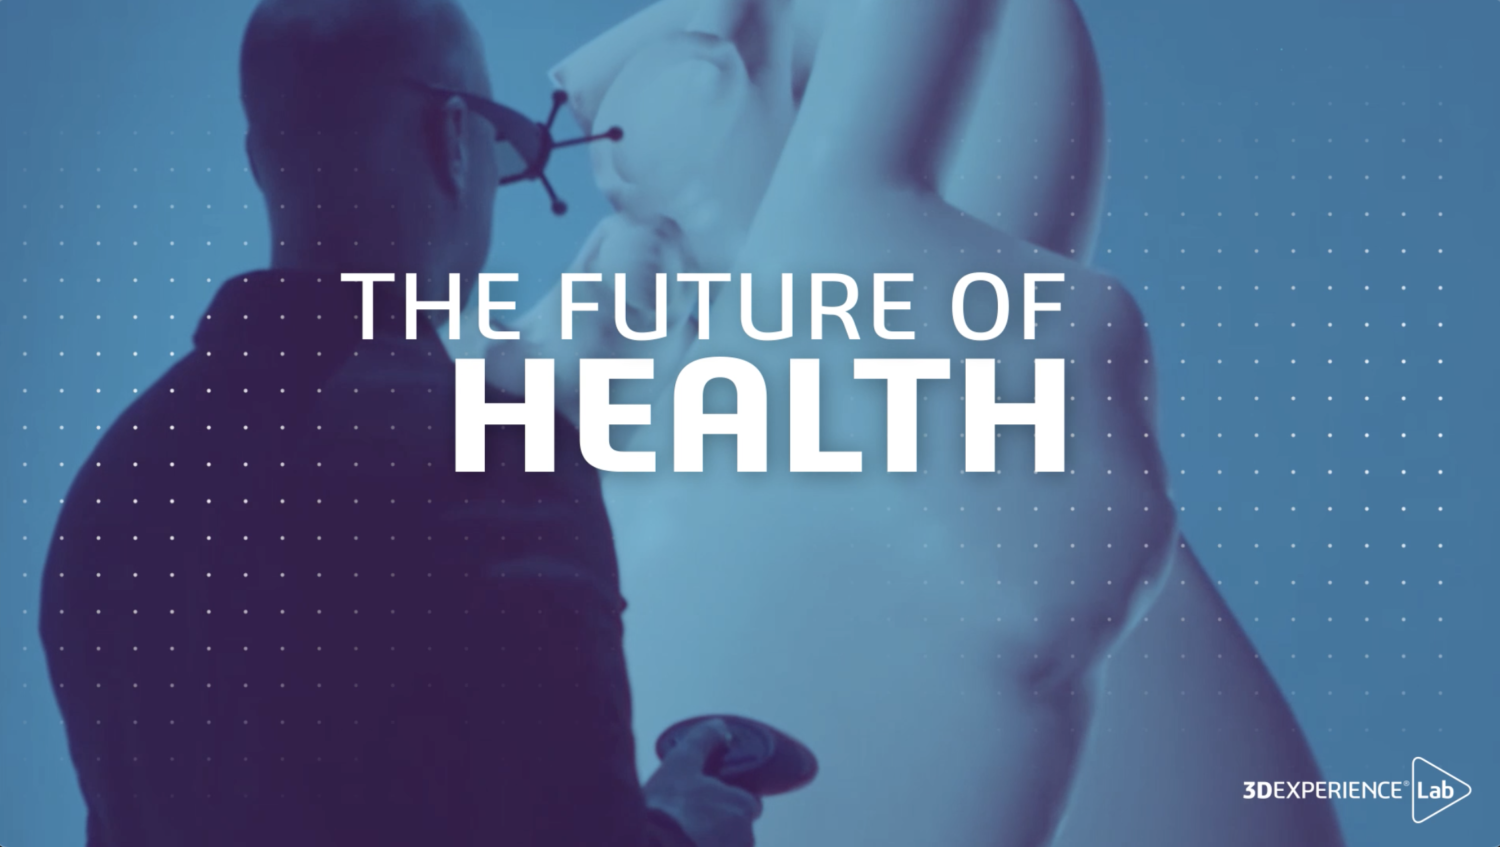 The future of the health